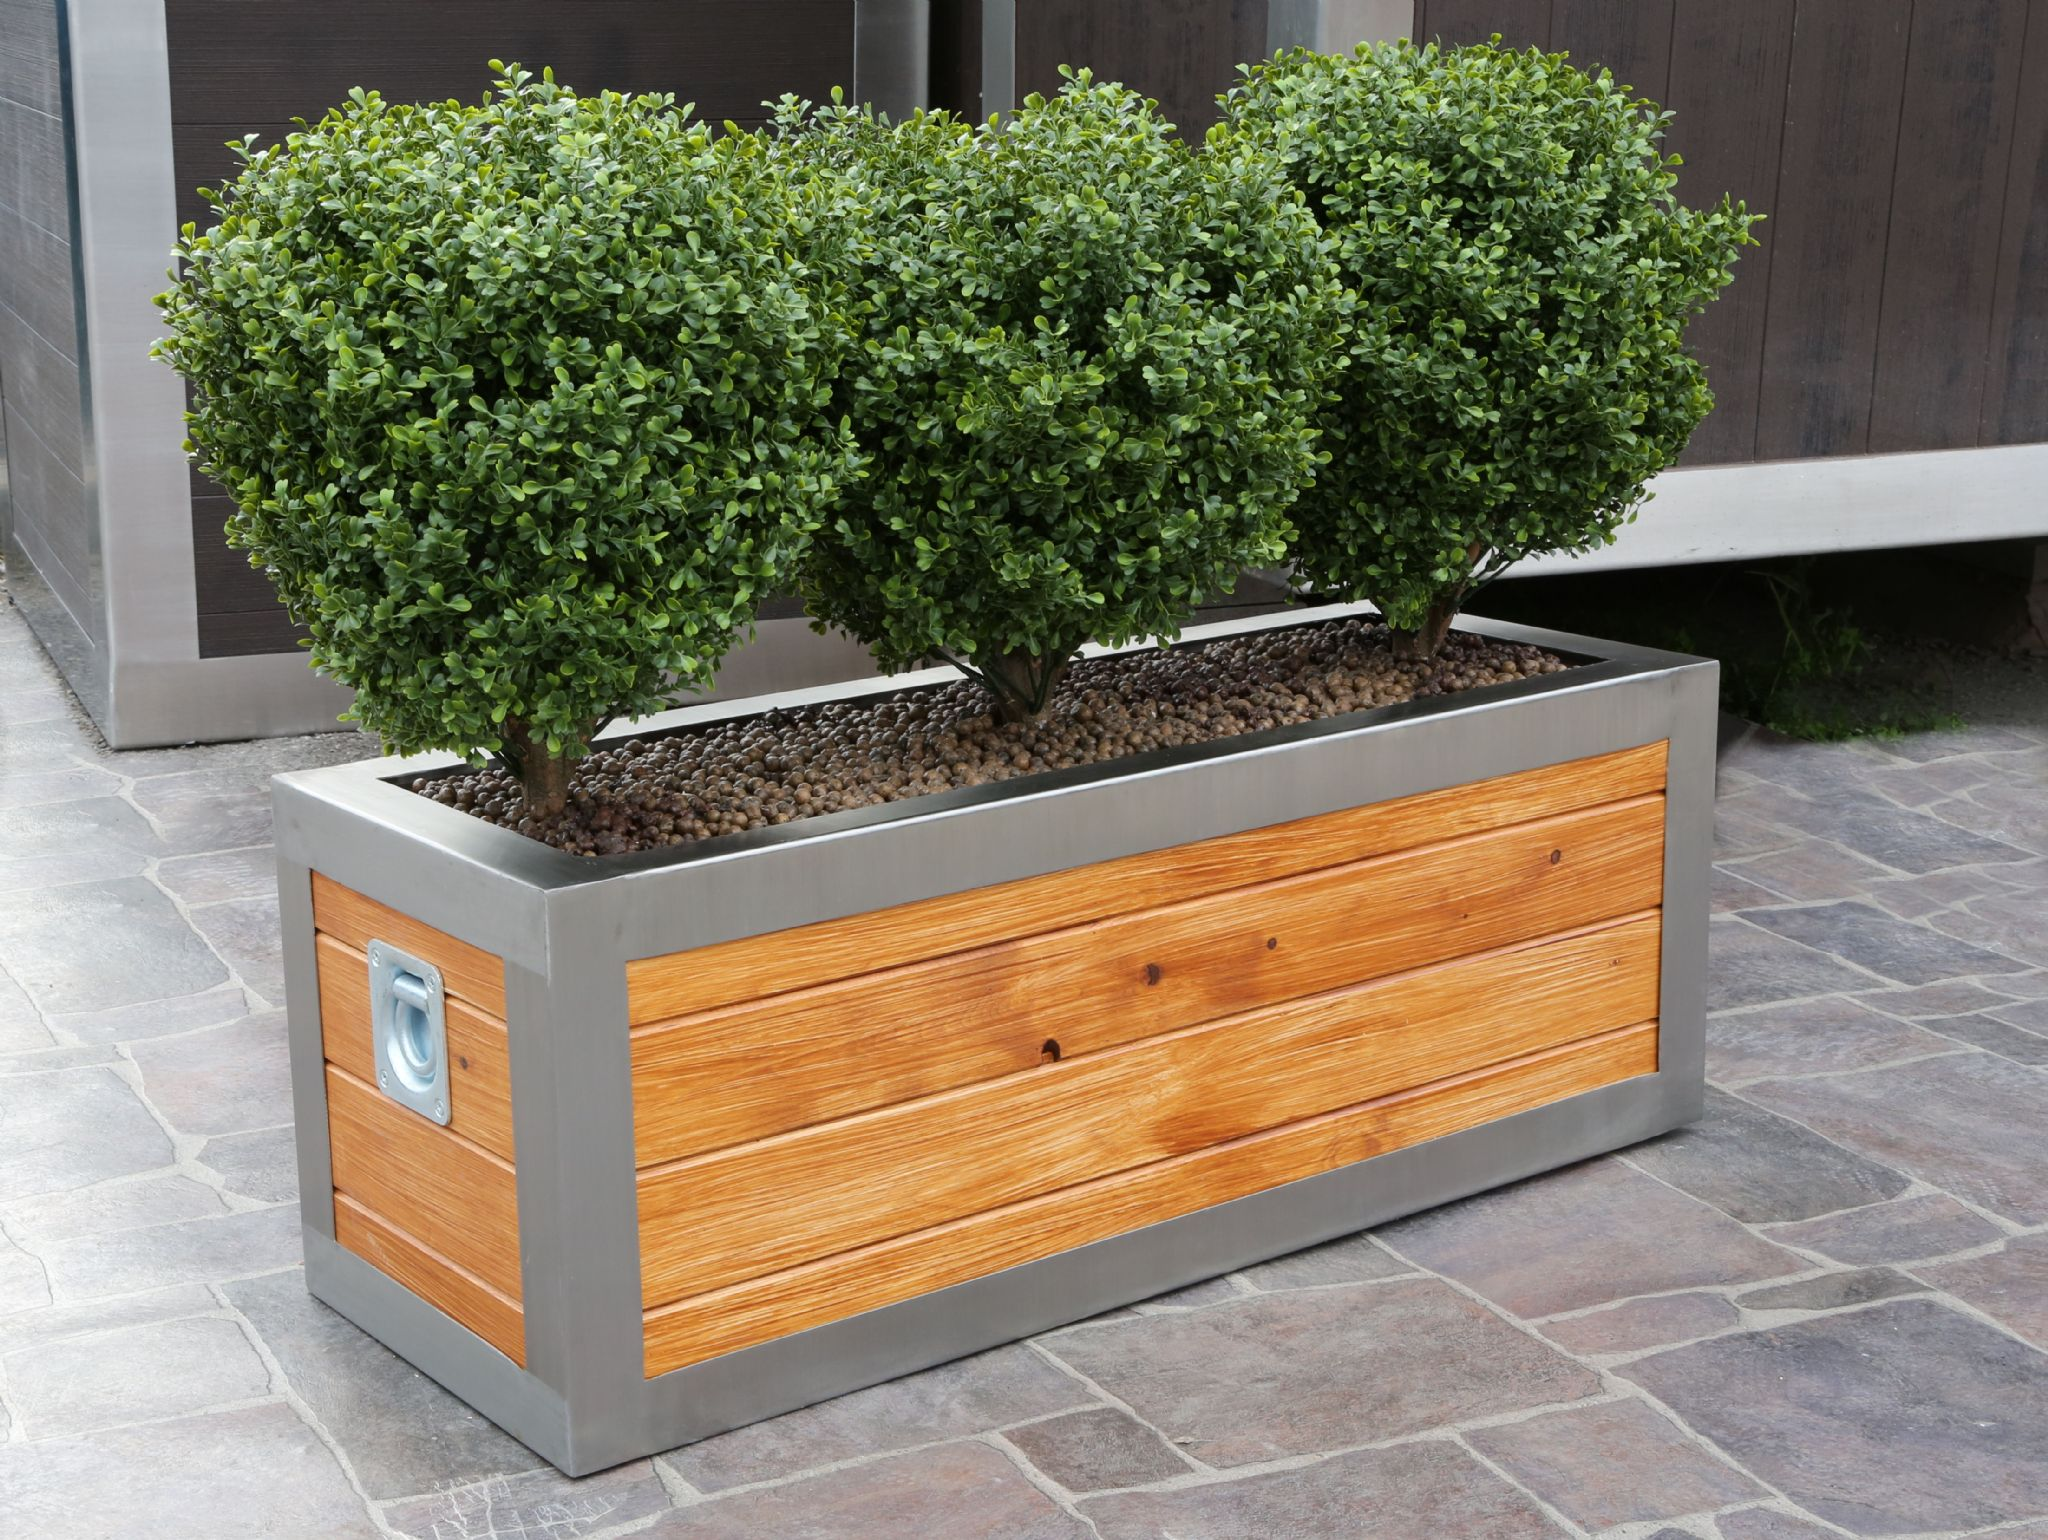 large granite planters with Stainless Steel Frame Trough Planter 18232 P on Re mended Timeless House In India With Courtyard Zen Garden The 2 furthermore How To Make A Backyard Fire Pit in addition 33 Floral Polished Blue Gray Granite Double Well Farmhouse Sink With Prep Bowl further River Rock Garden Edging Ideas in addition Samsung Stainless Steel  plete Kitchen Package.